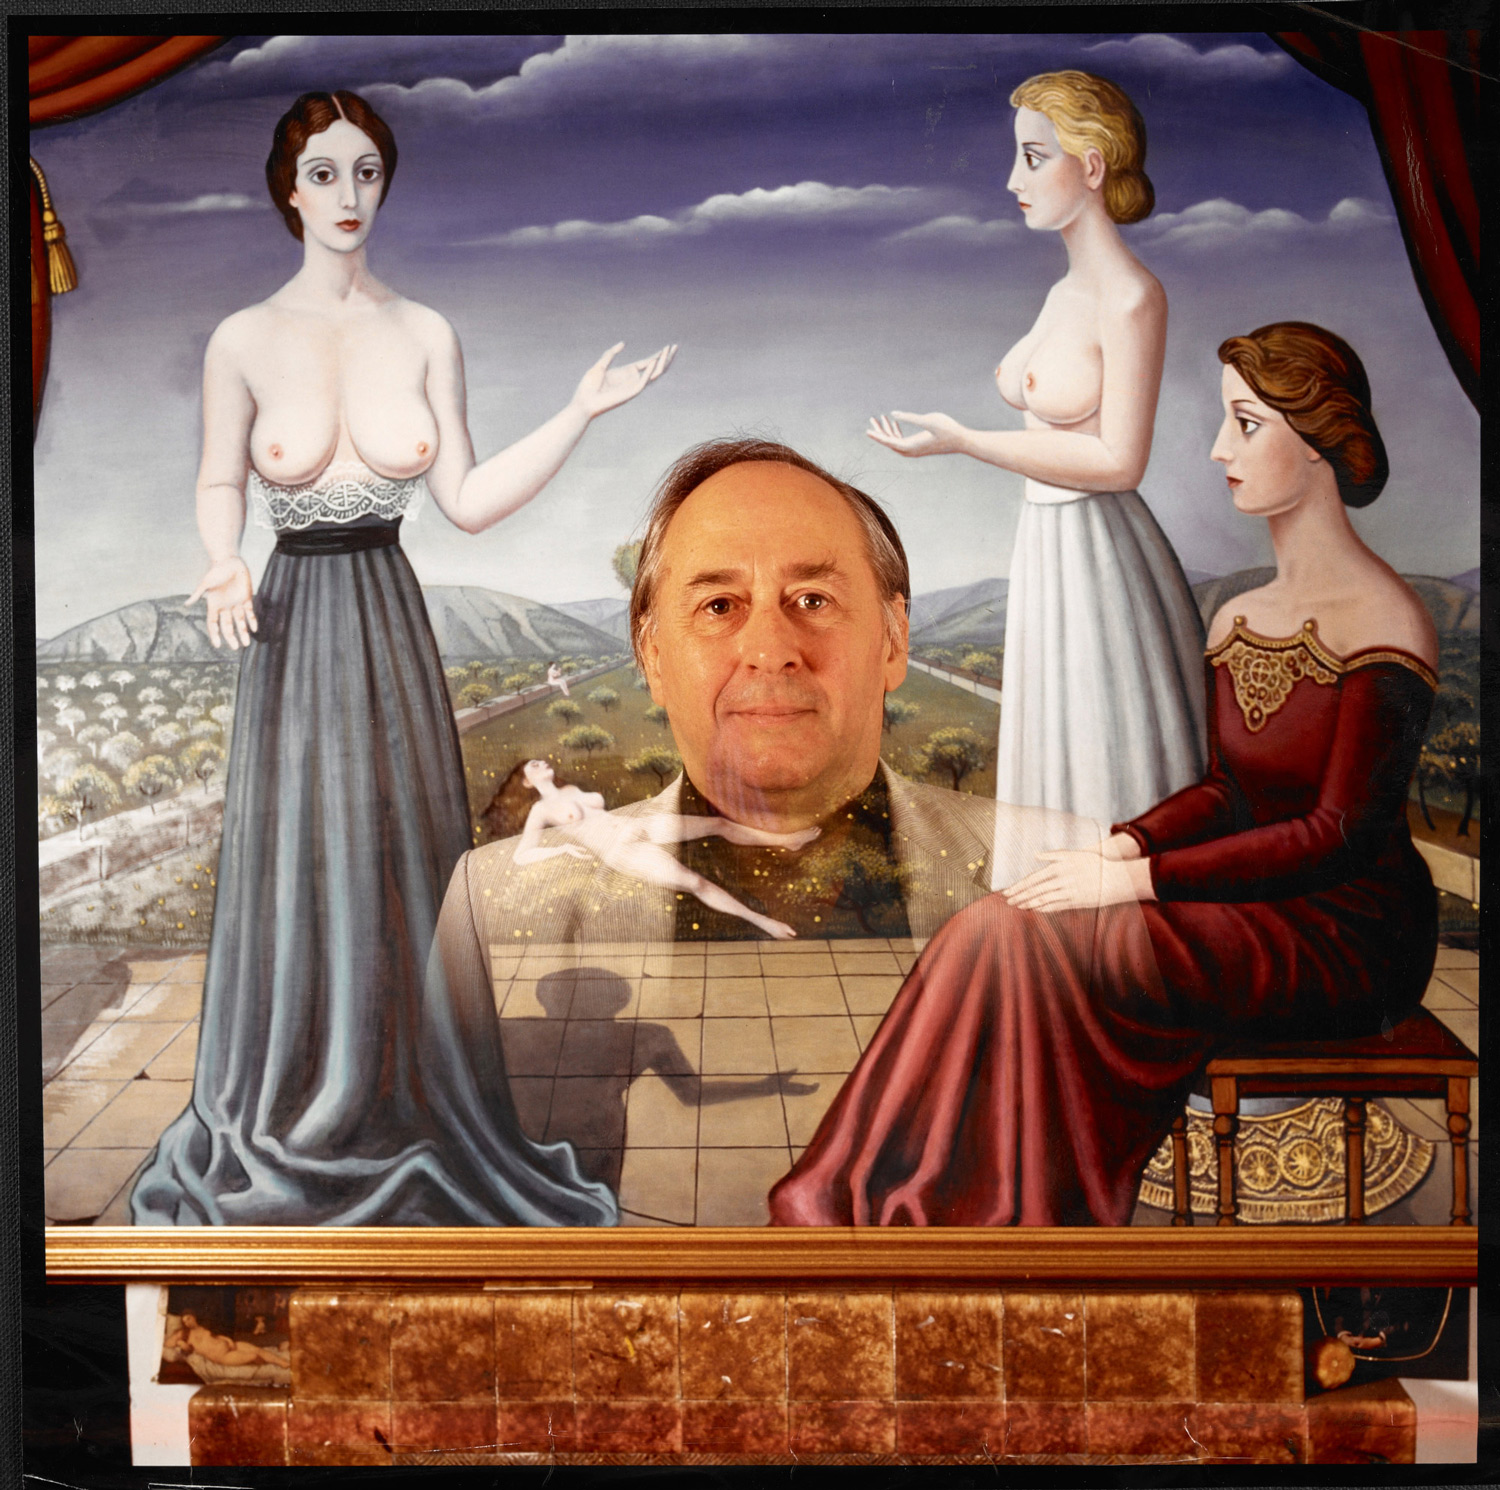 Photographs of J G Ballard with copies of Paul Delvaux's Surrealist paintings